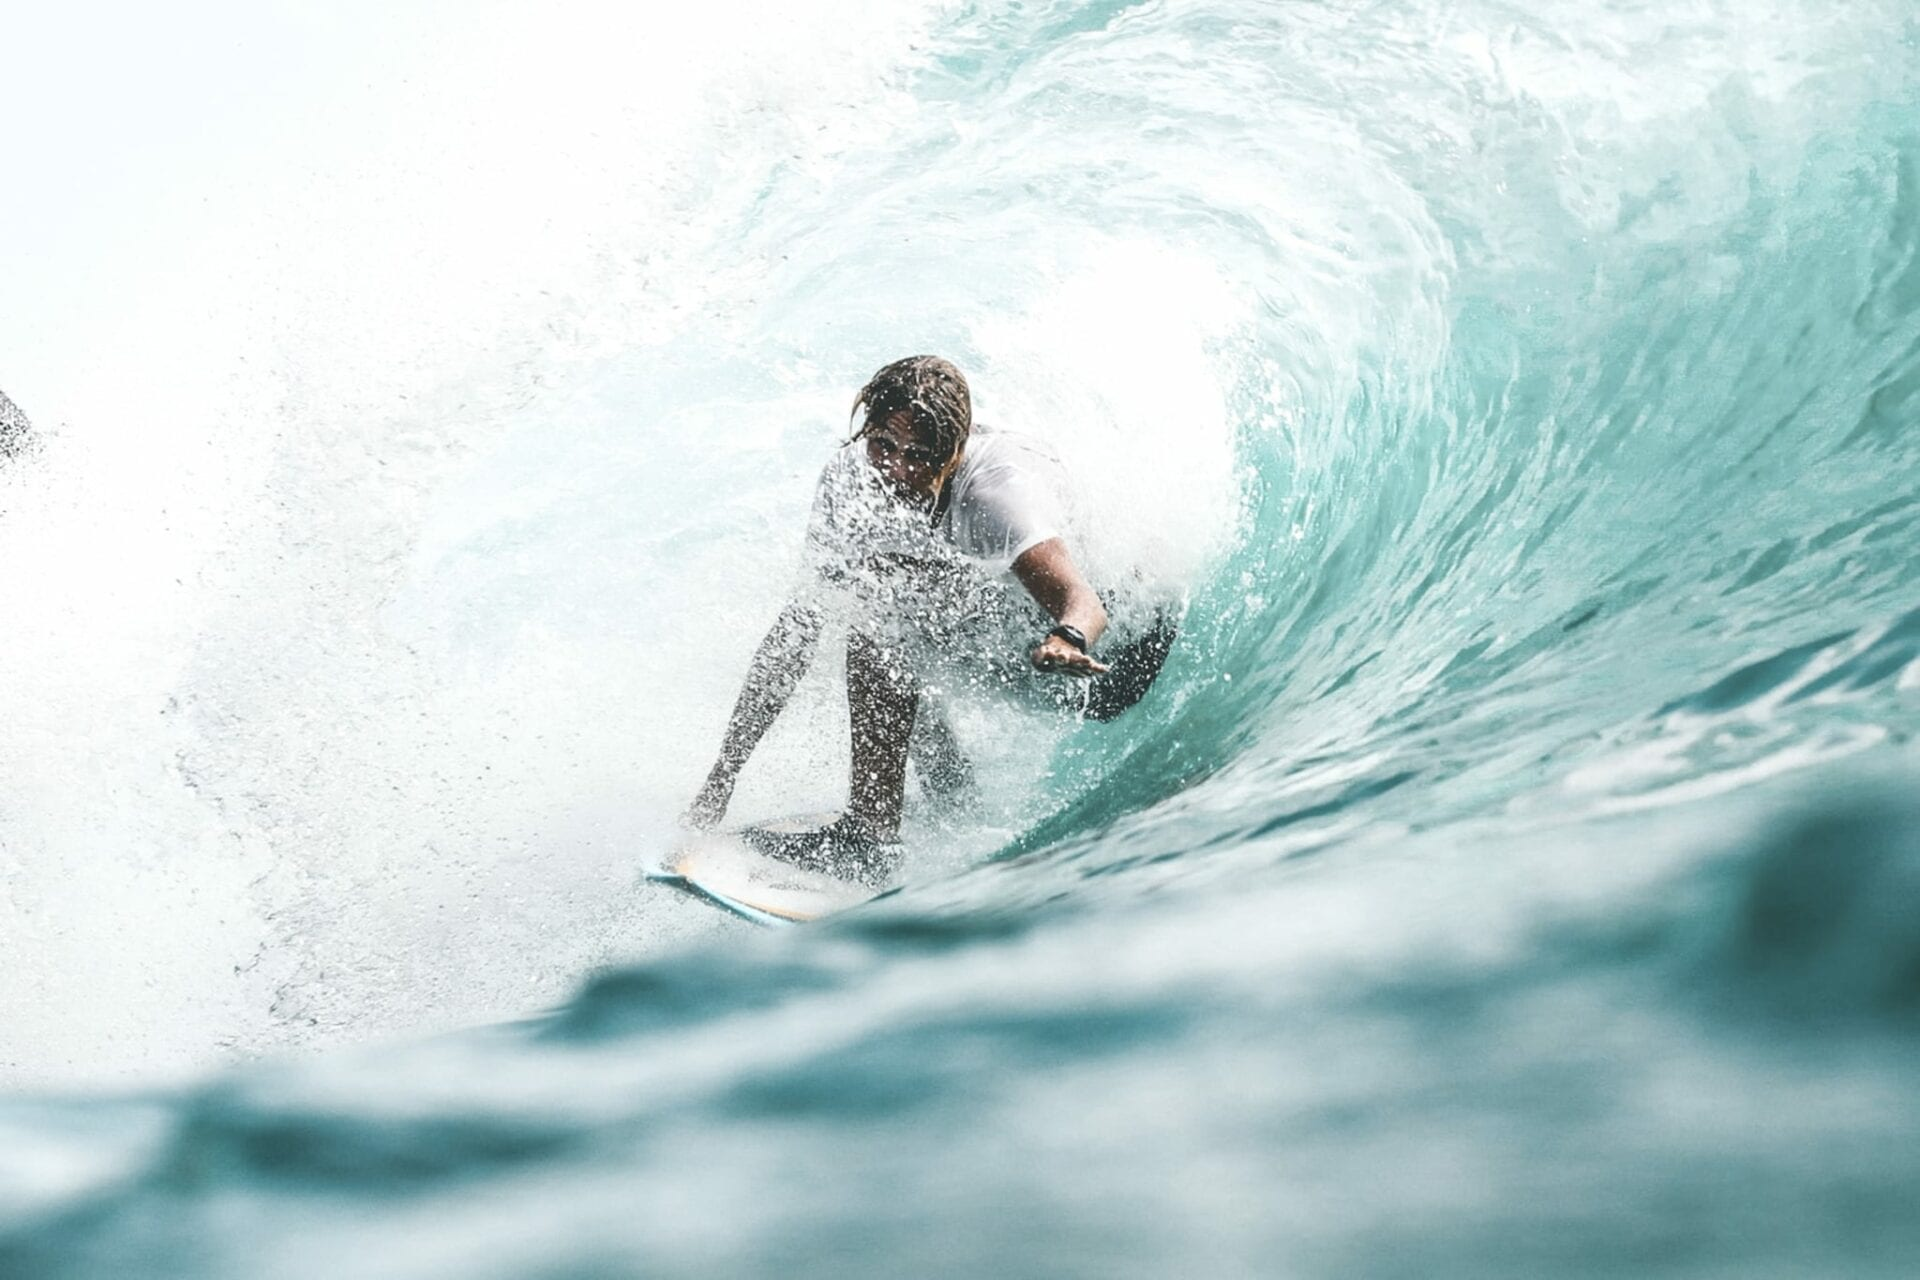 Surf video's